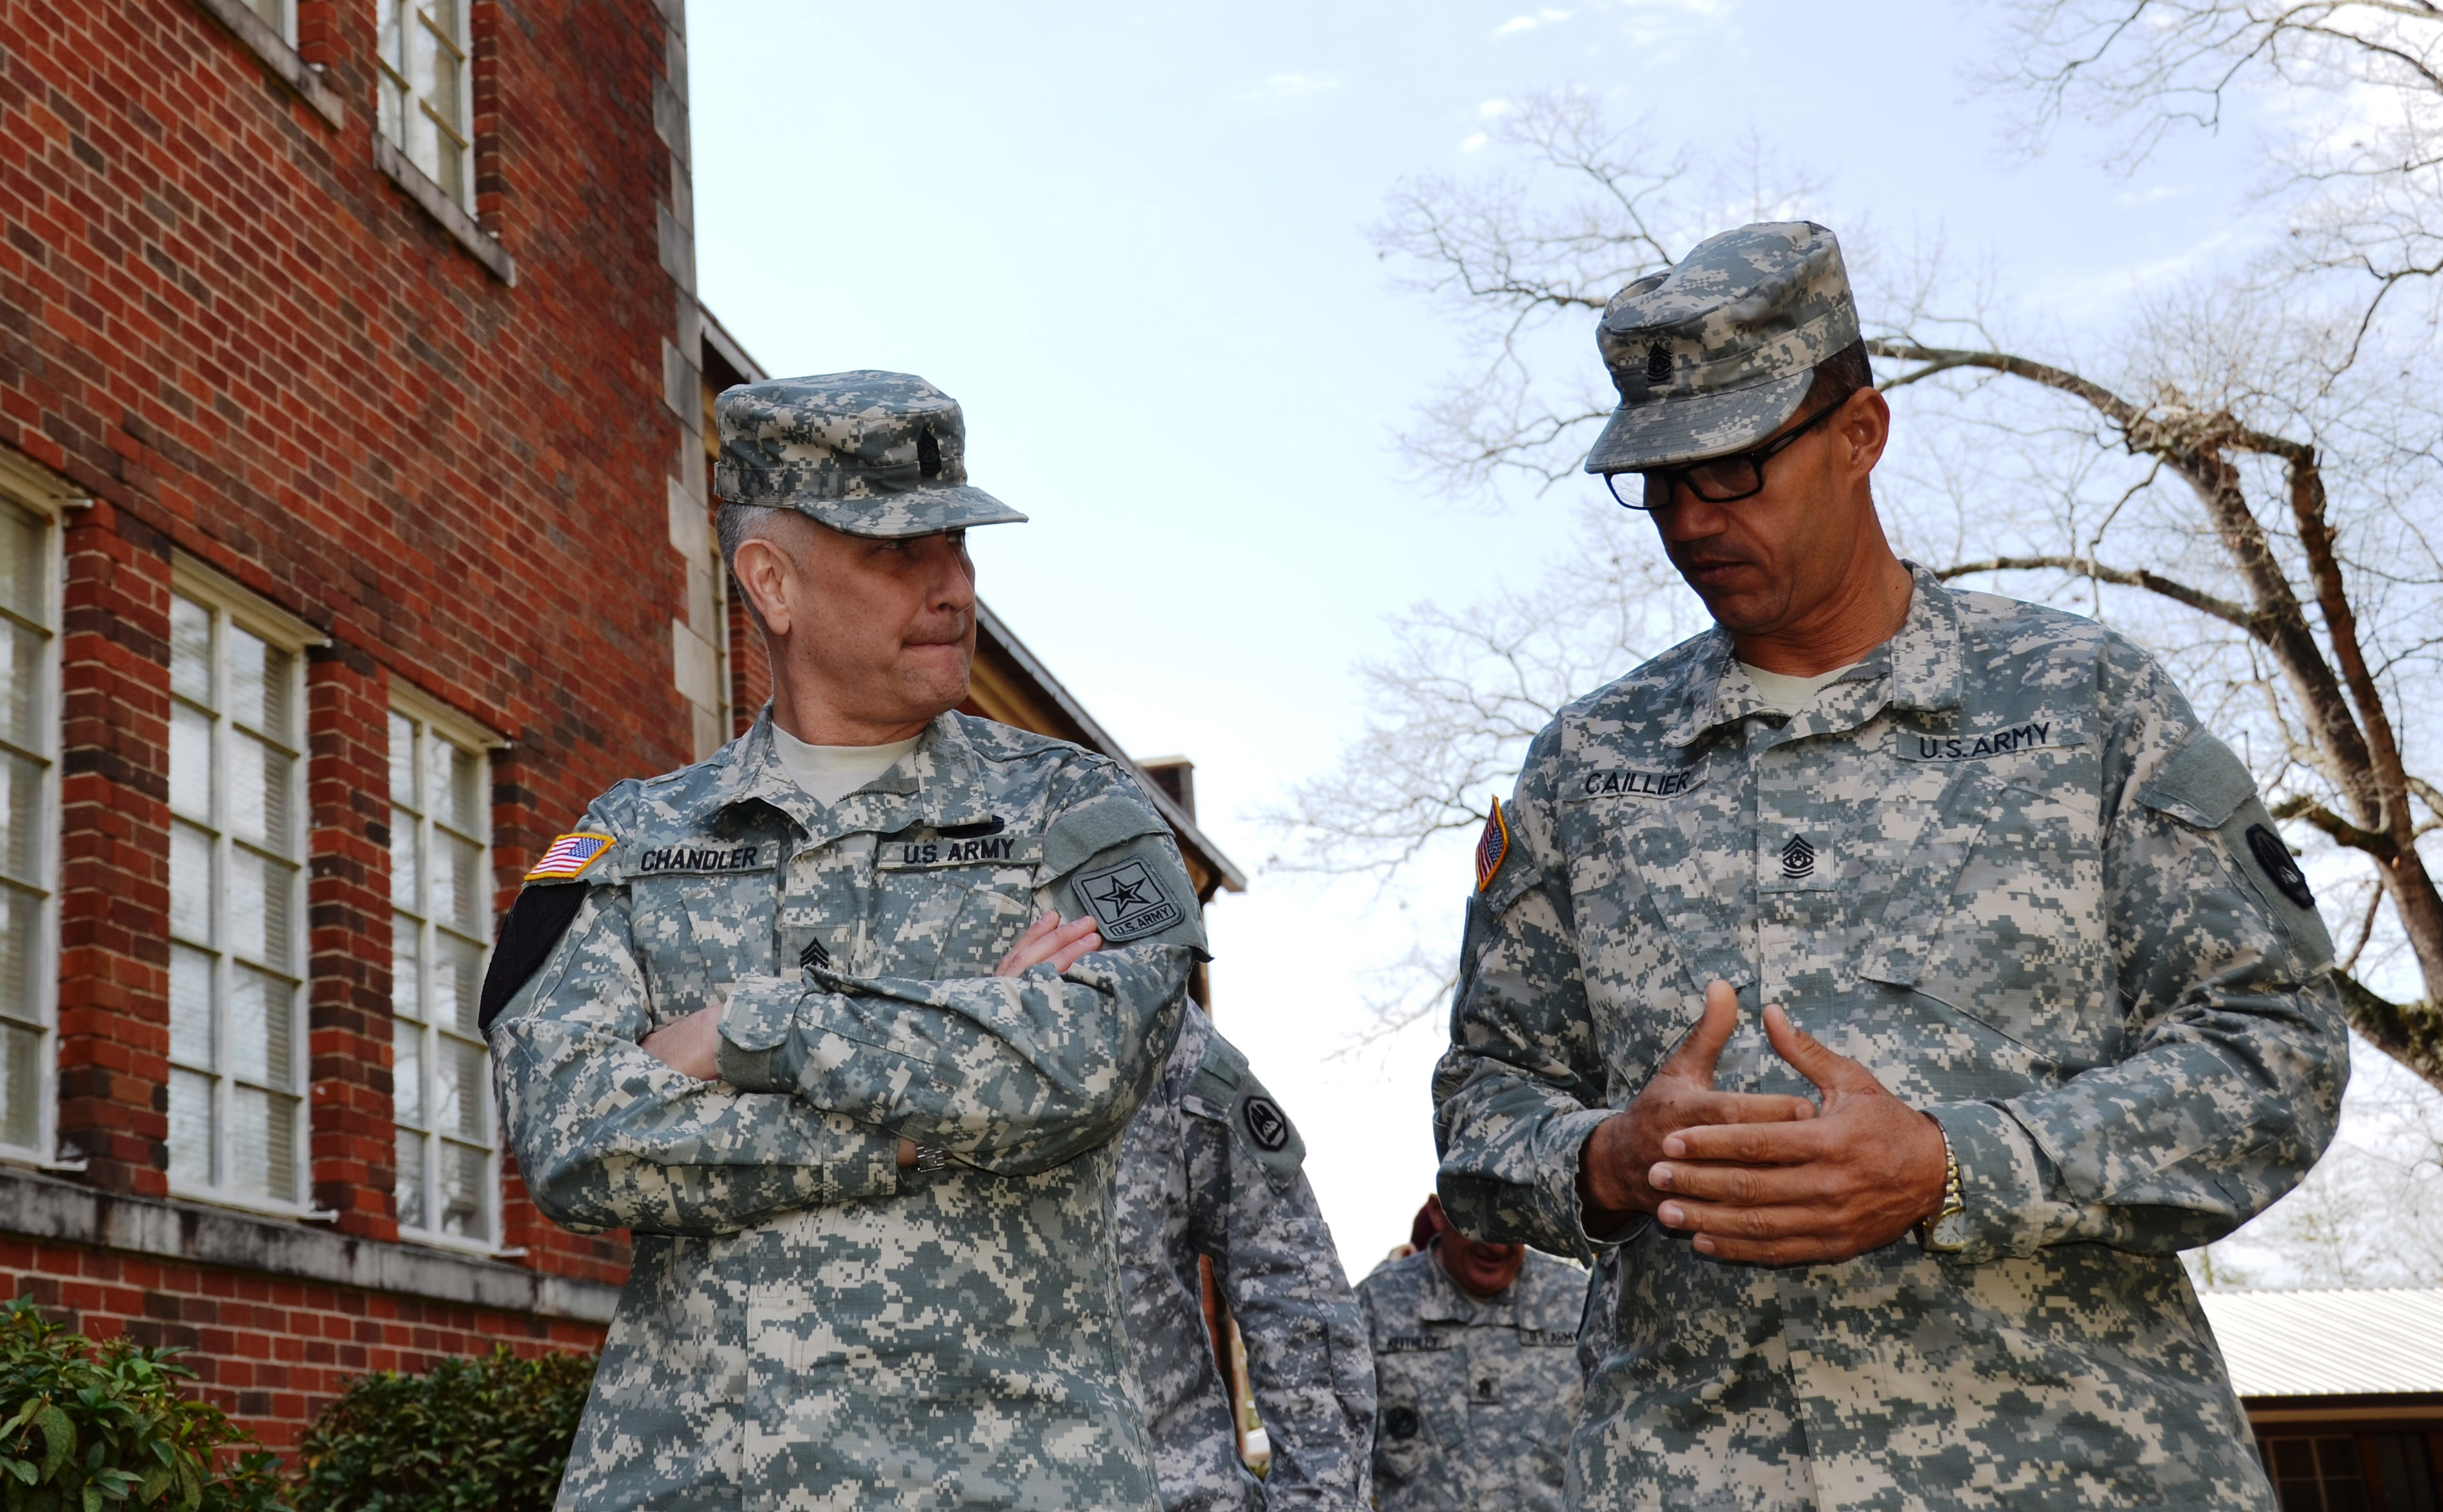 Sgt. Maj. of the Army visits LANG NCO Academy